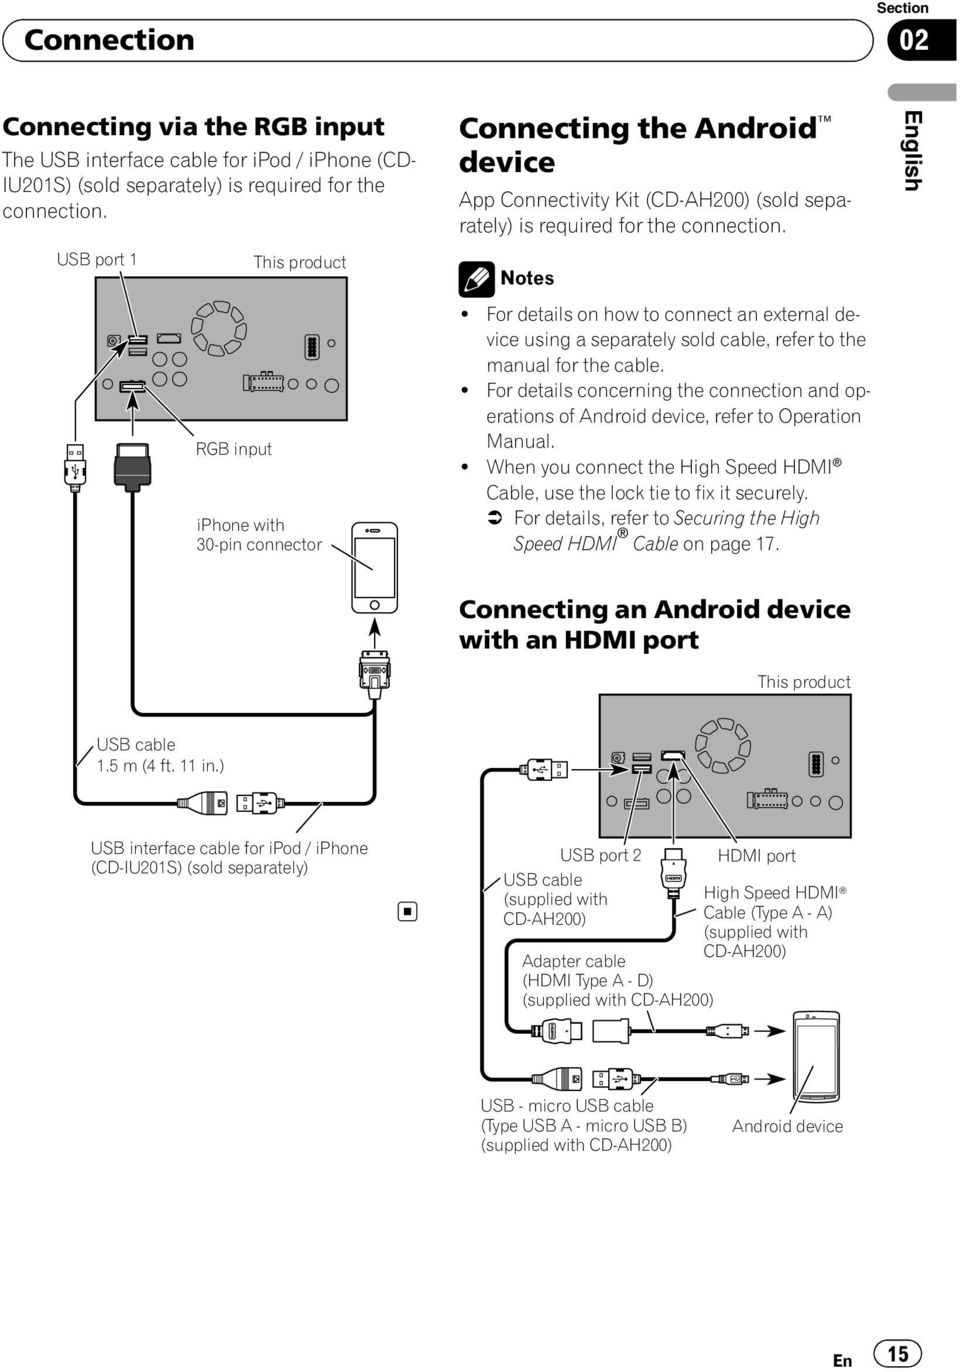 For details on how to connect an external device using a separately sold cable, refer to the manual for the cable.